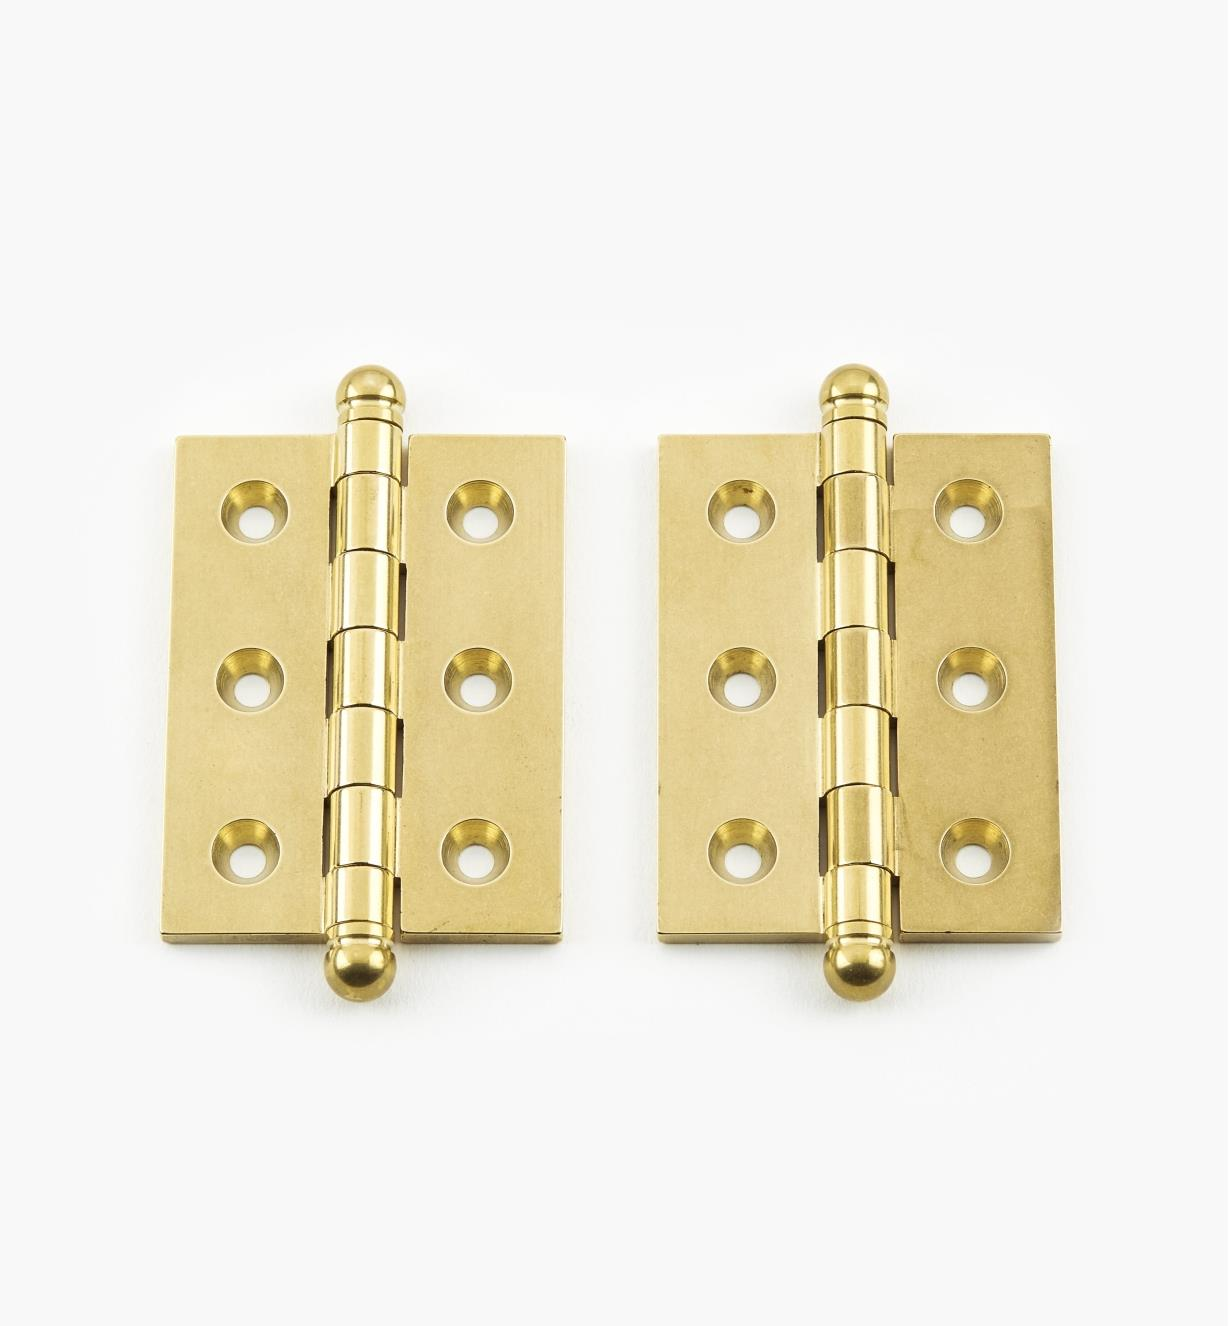 "01B0207 - 2"" x 1 1/2"" Ball-Tip Hinges, pr."